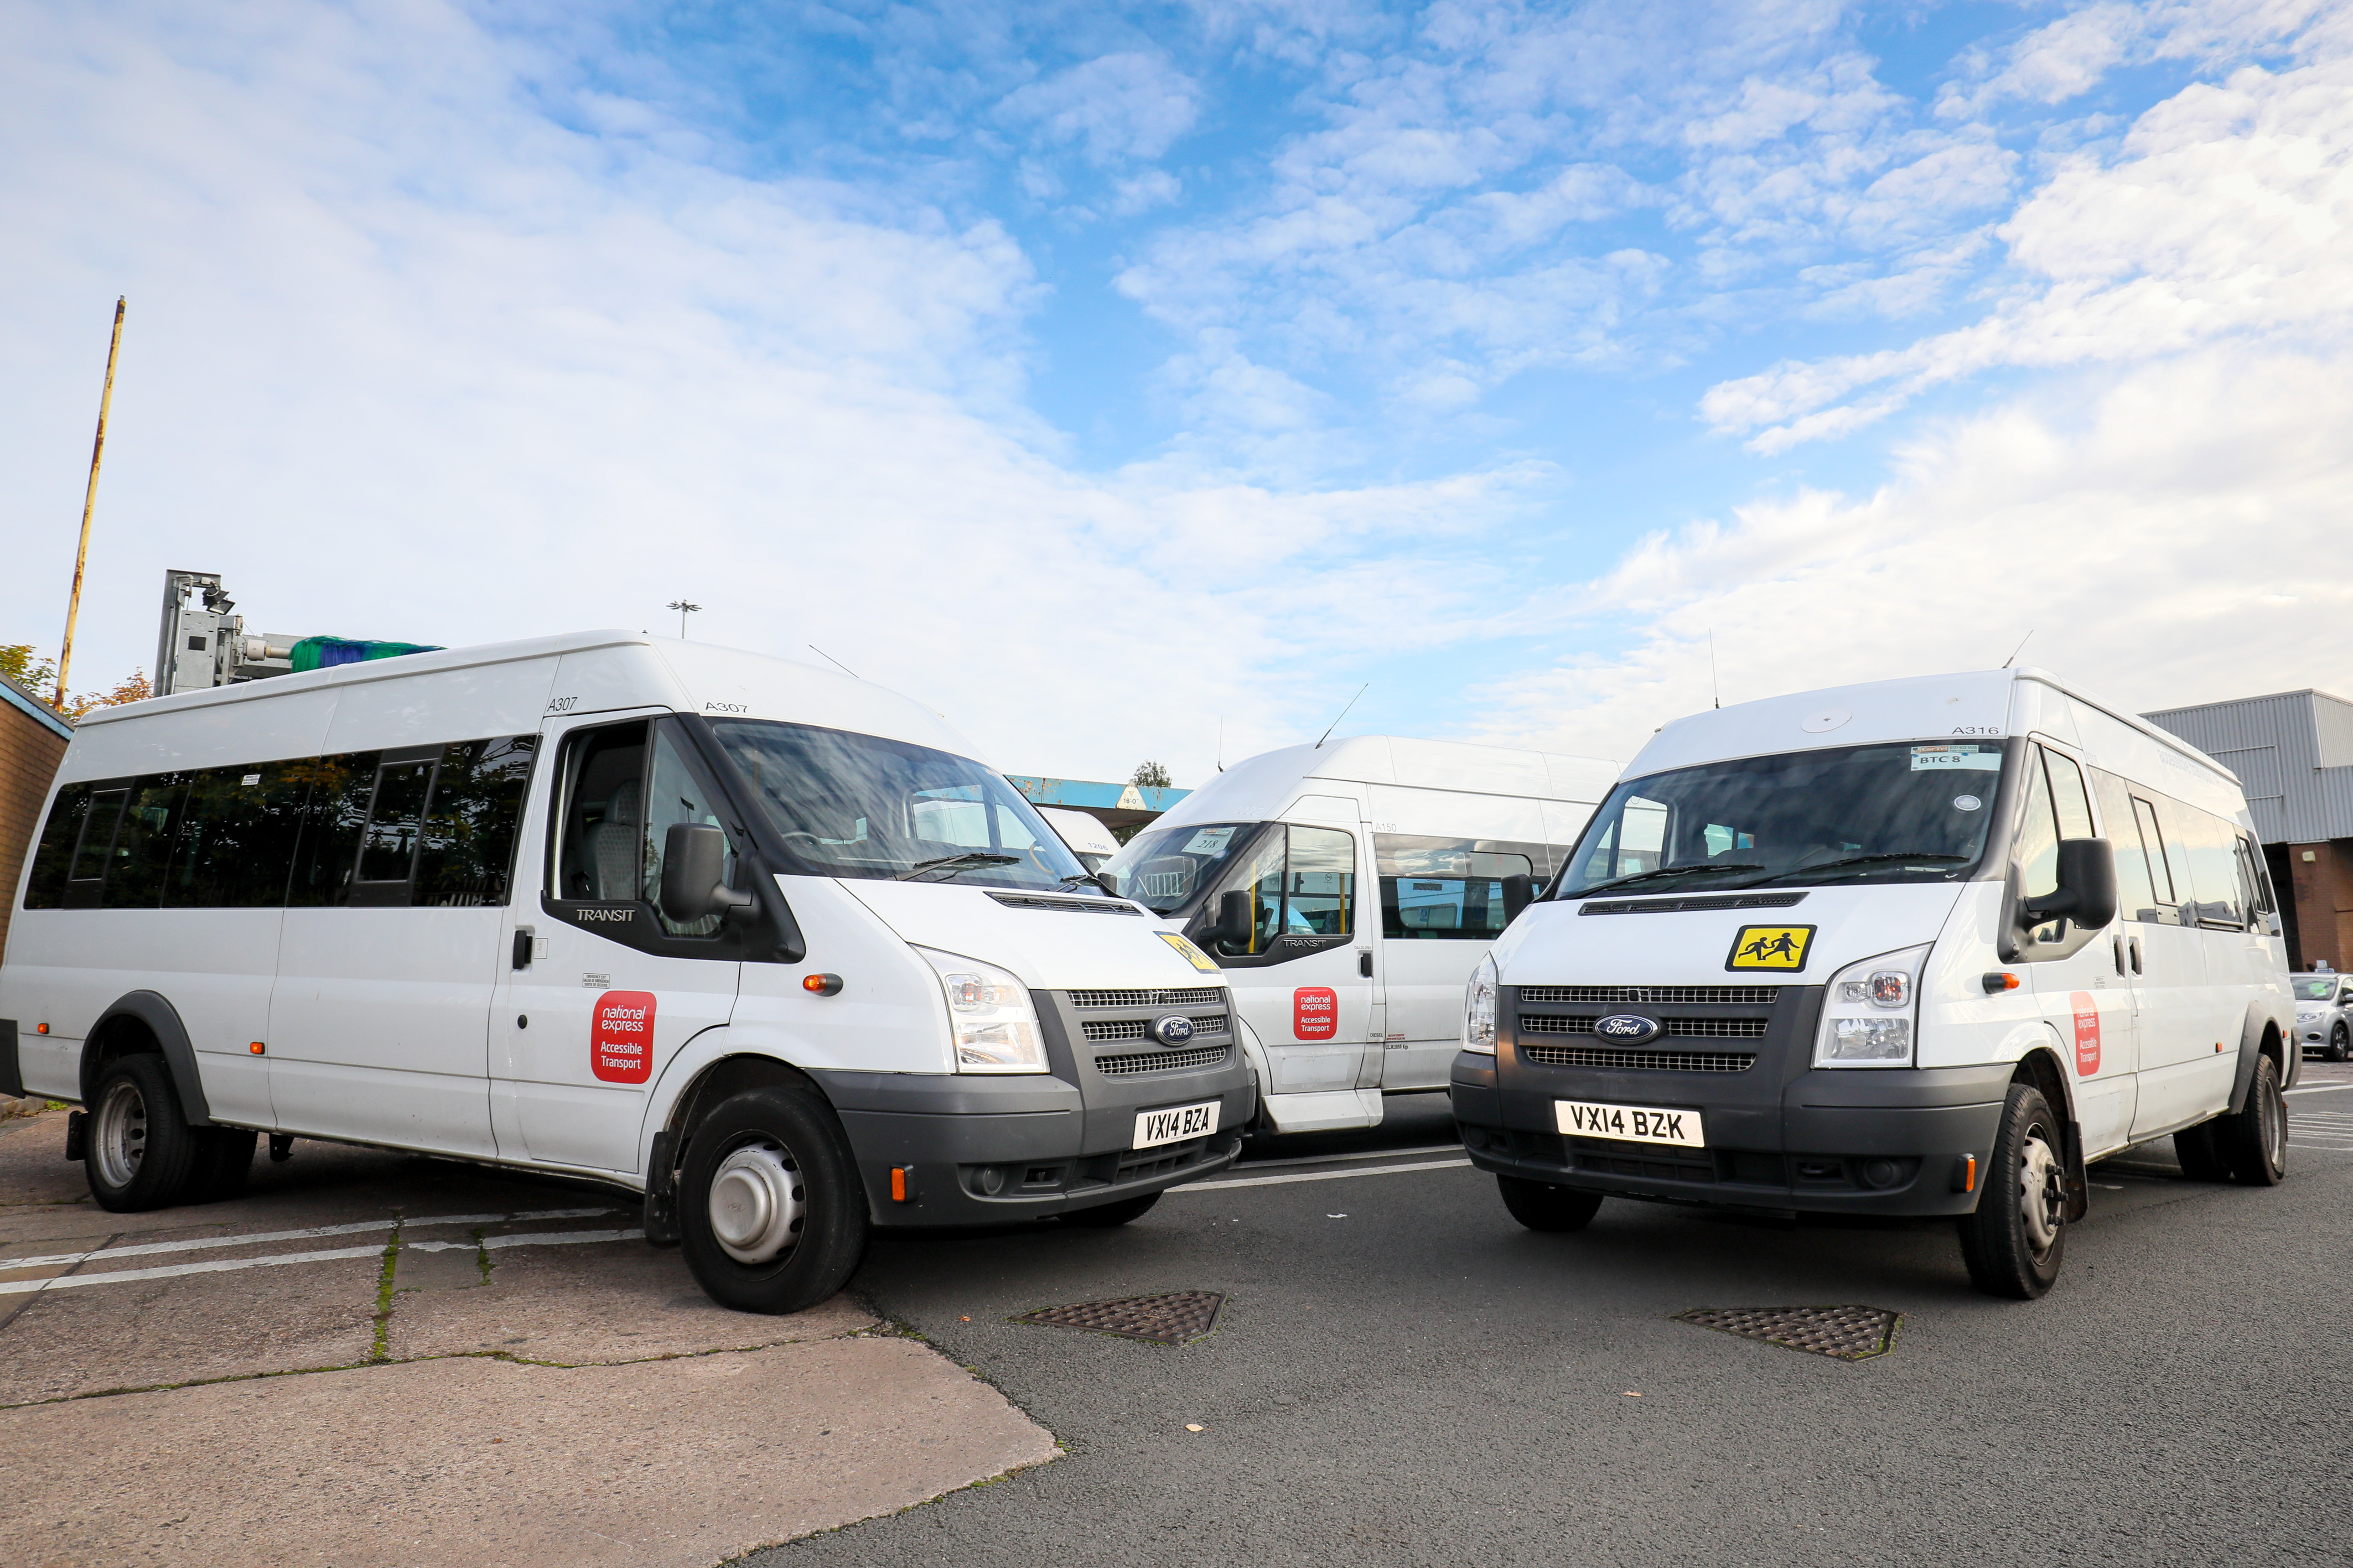 Hospital staff shuttle bus service used more than 2,500 times during coronavirus outbreak